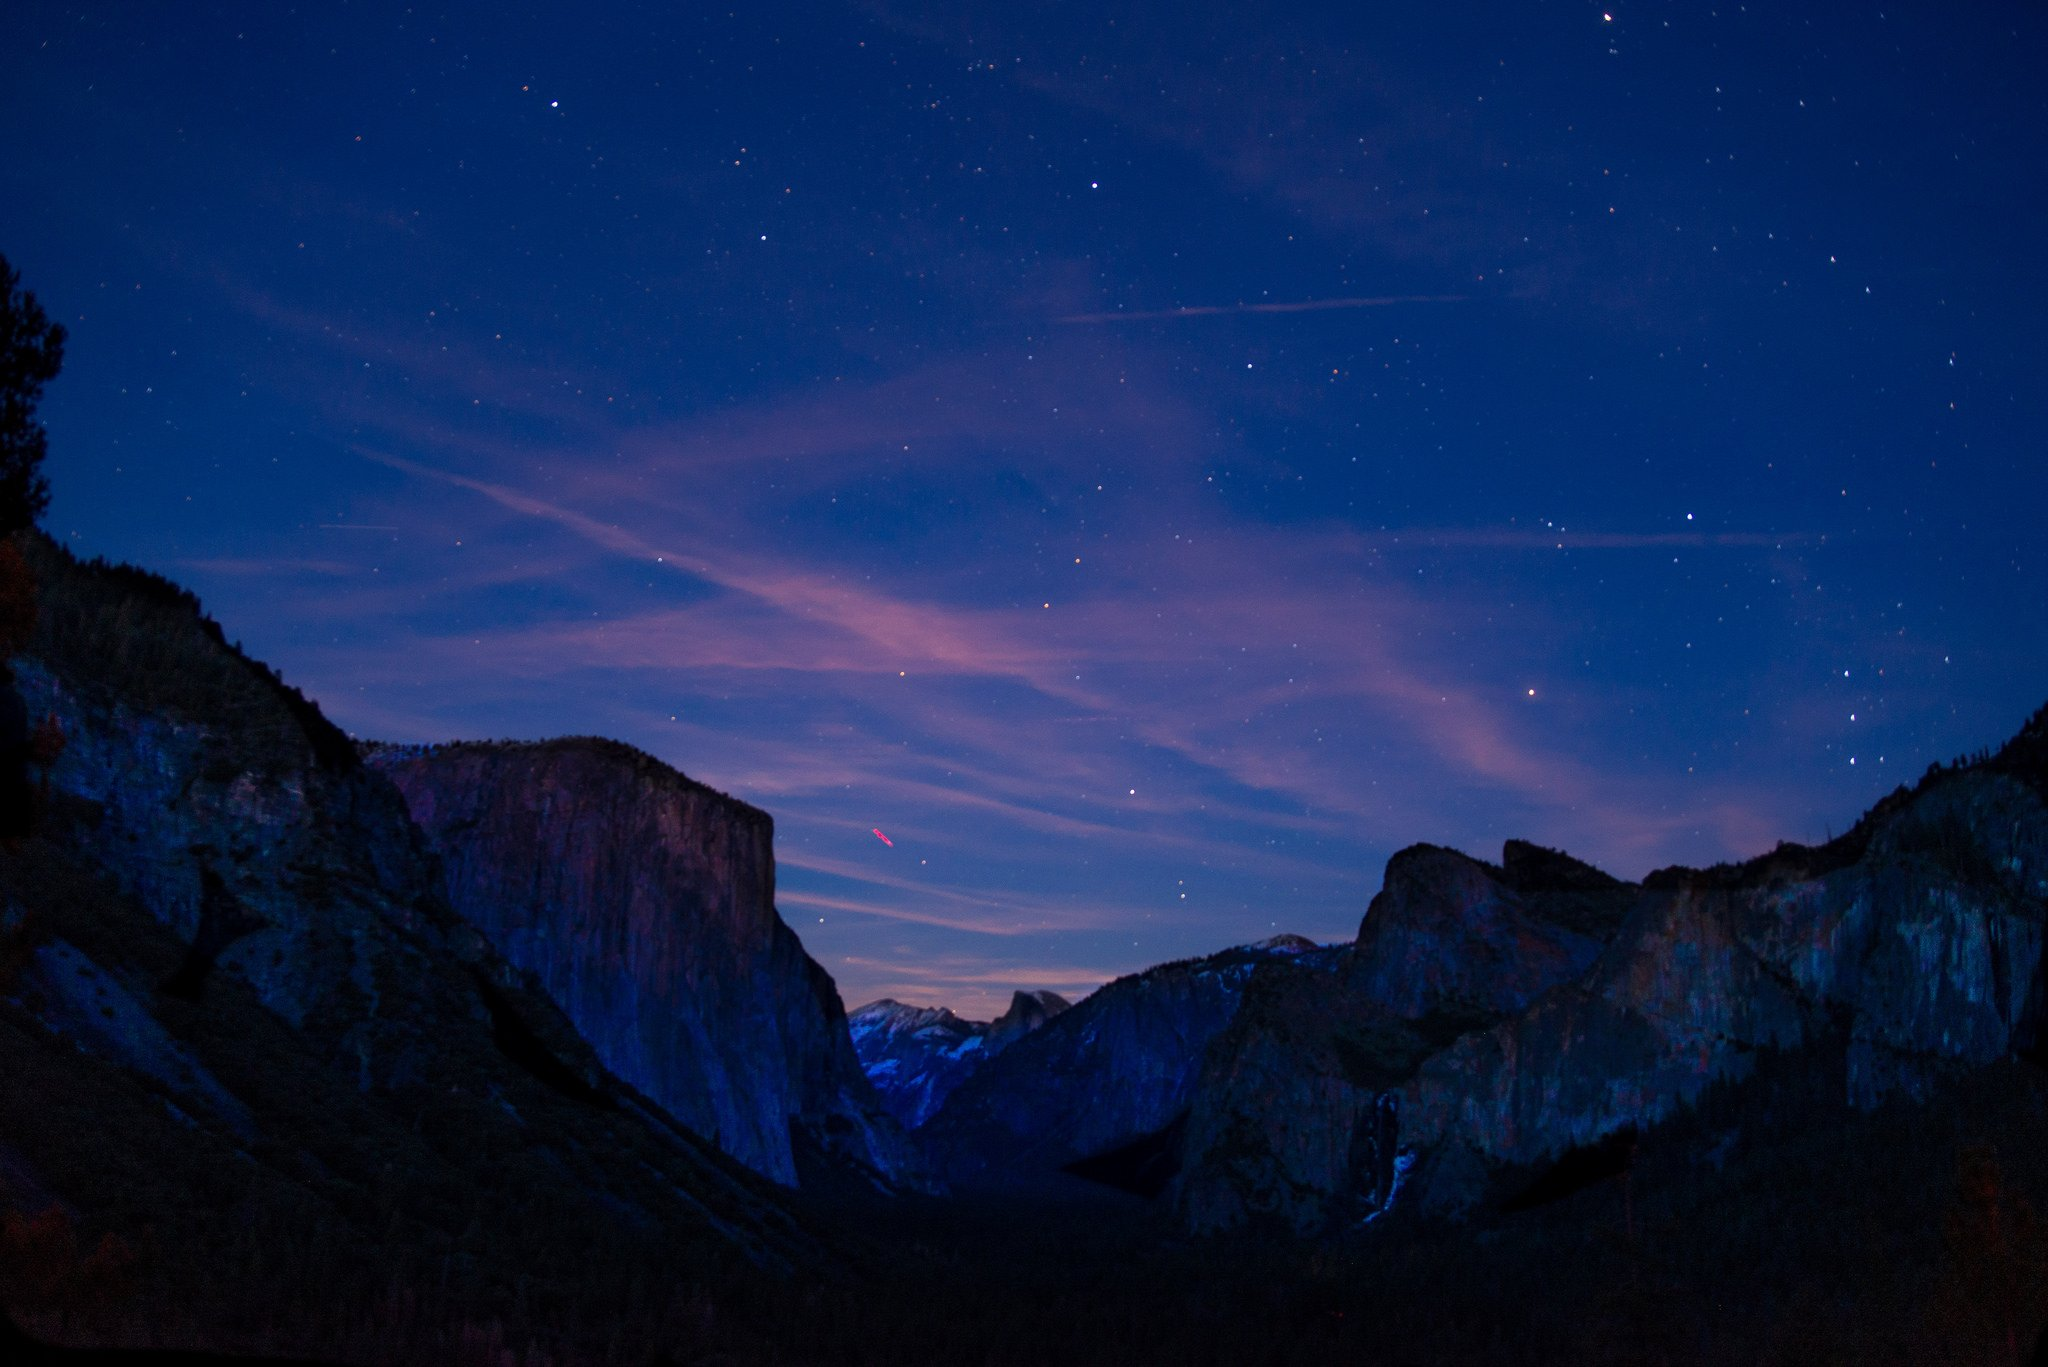 Tunnel View, Yosemite National Park at Night - A 15-Day California Road-Trip Itinerary